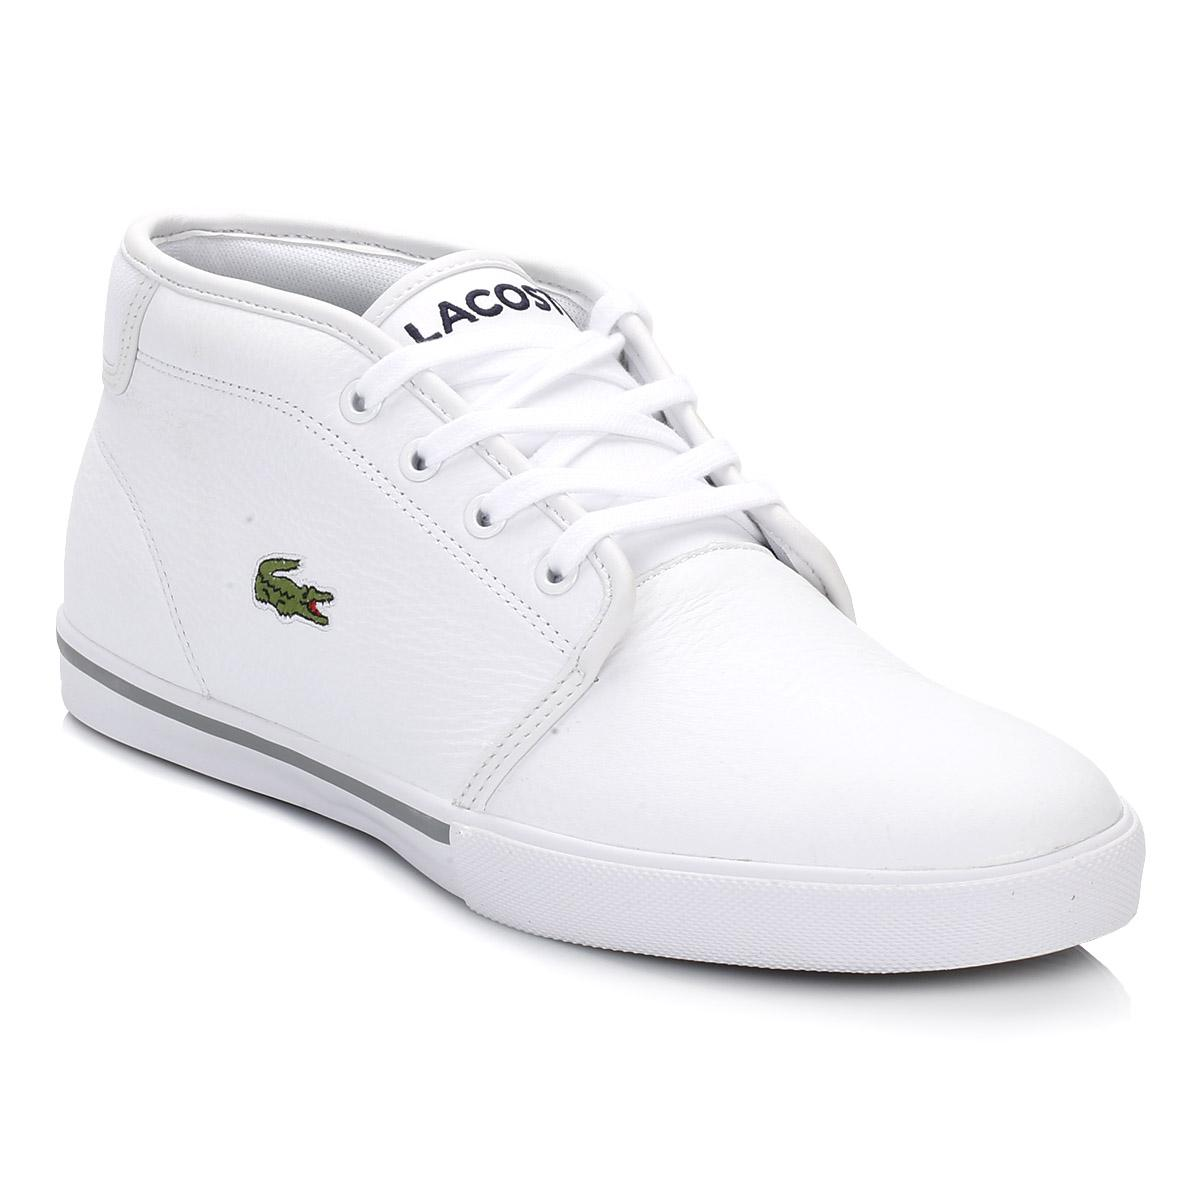 6f4ae1e3bf2f15 Lacoste Mens White Ampthill Trainers in White for Men - Save 52% - Lyst